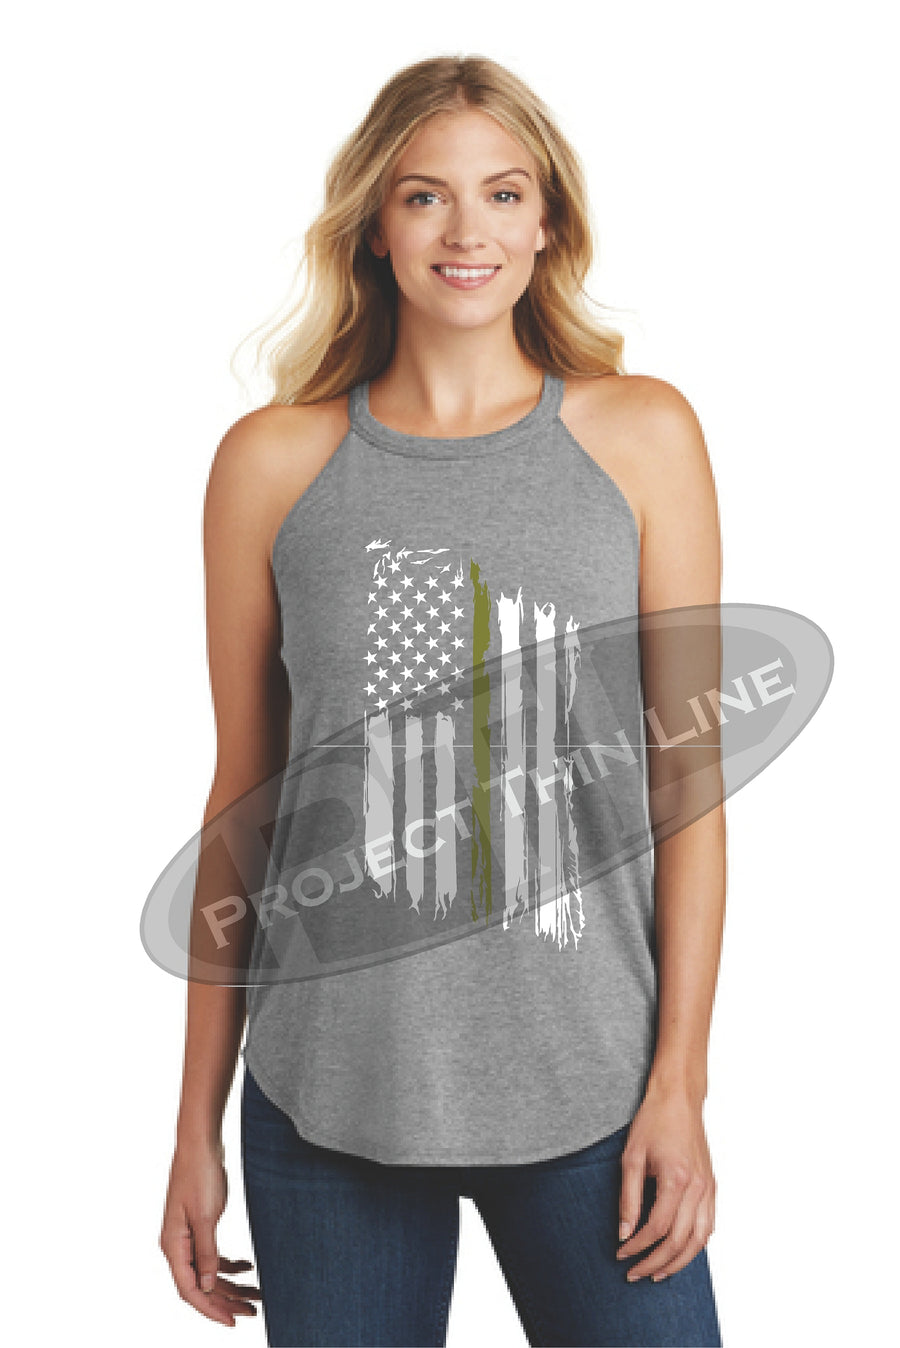 Black Tattered Thin GOLD Line American Flag Rocker Tank Top - FRONT